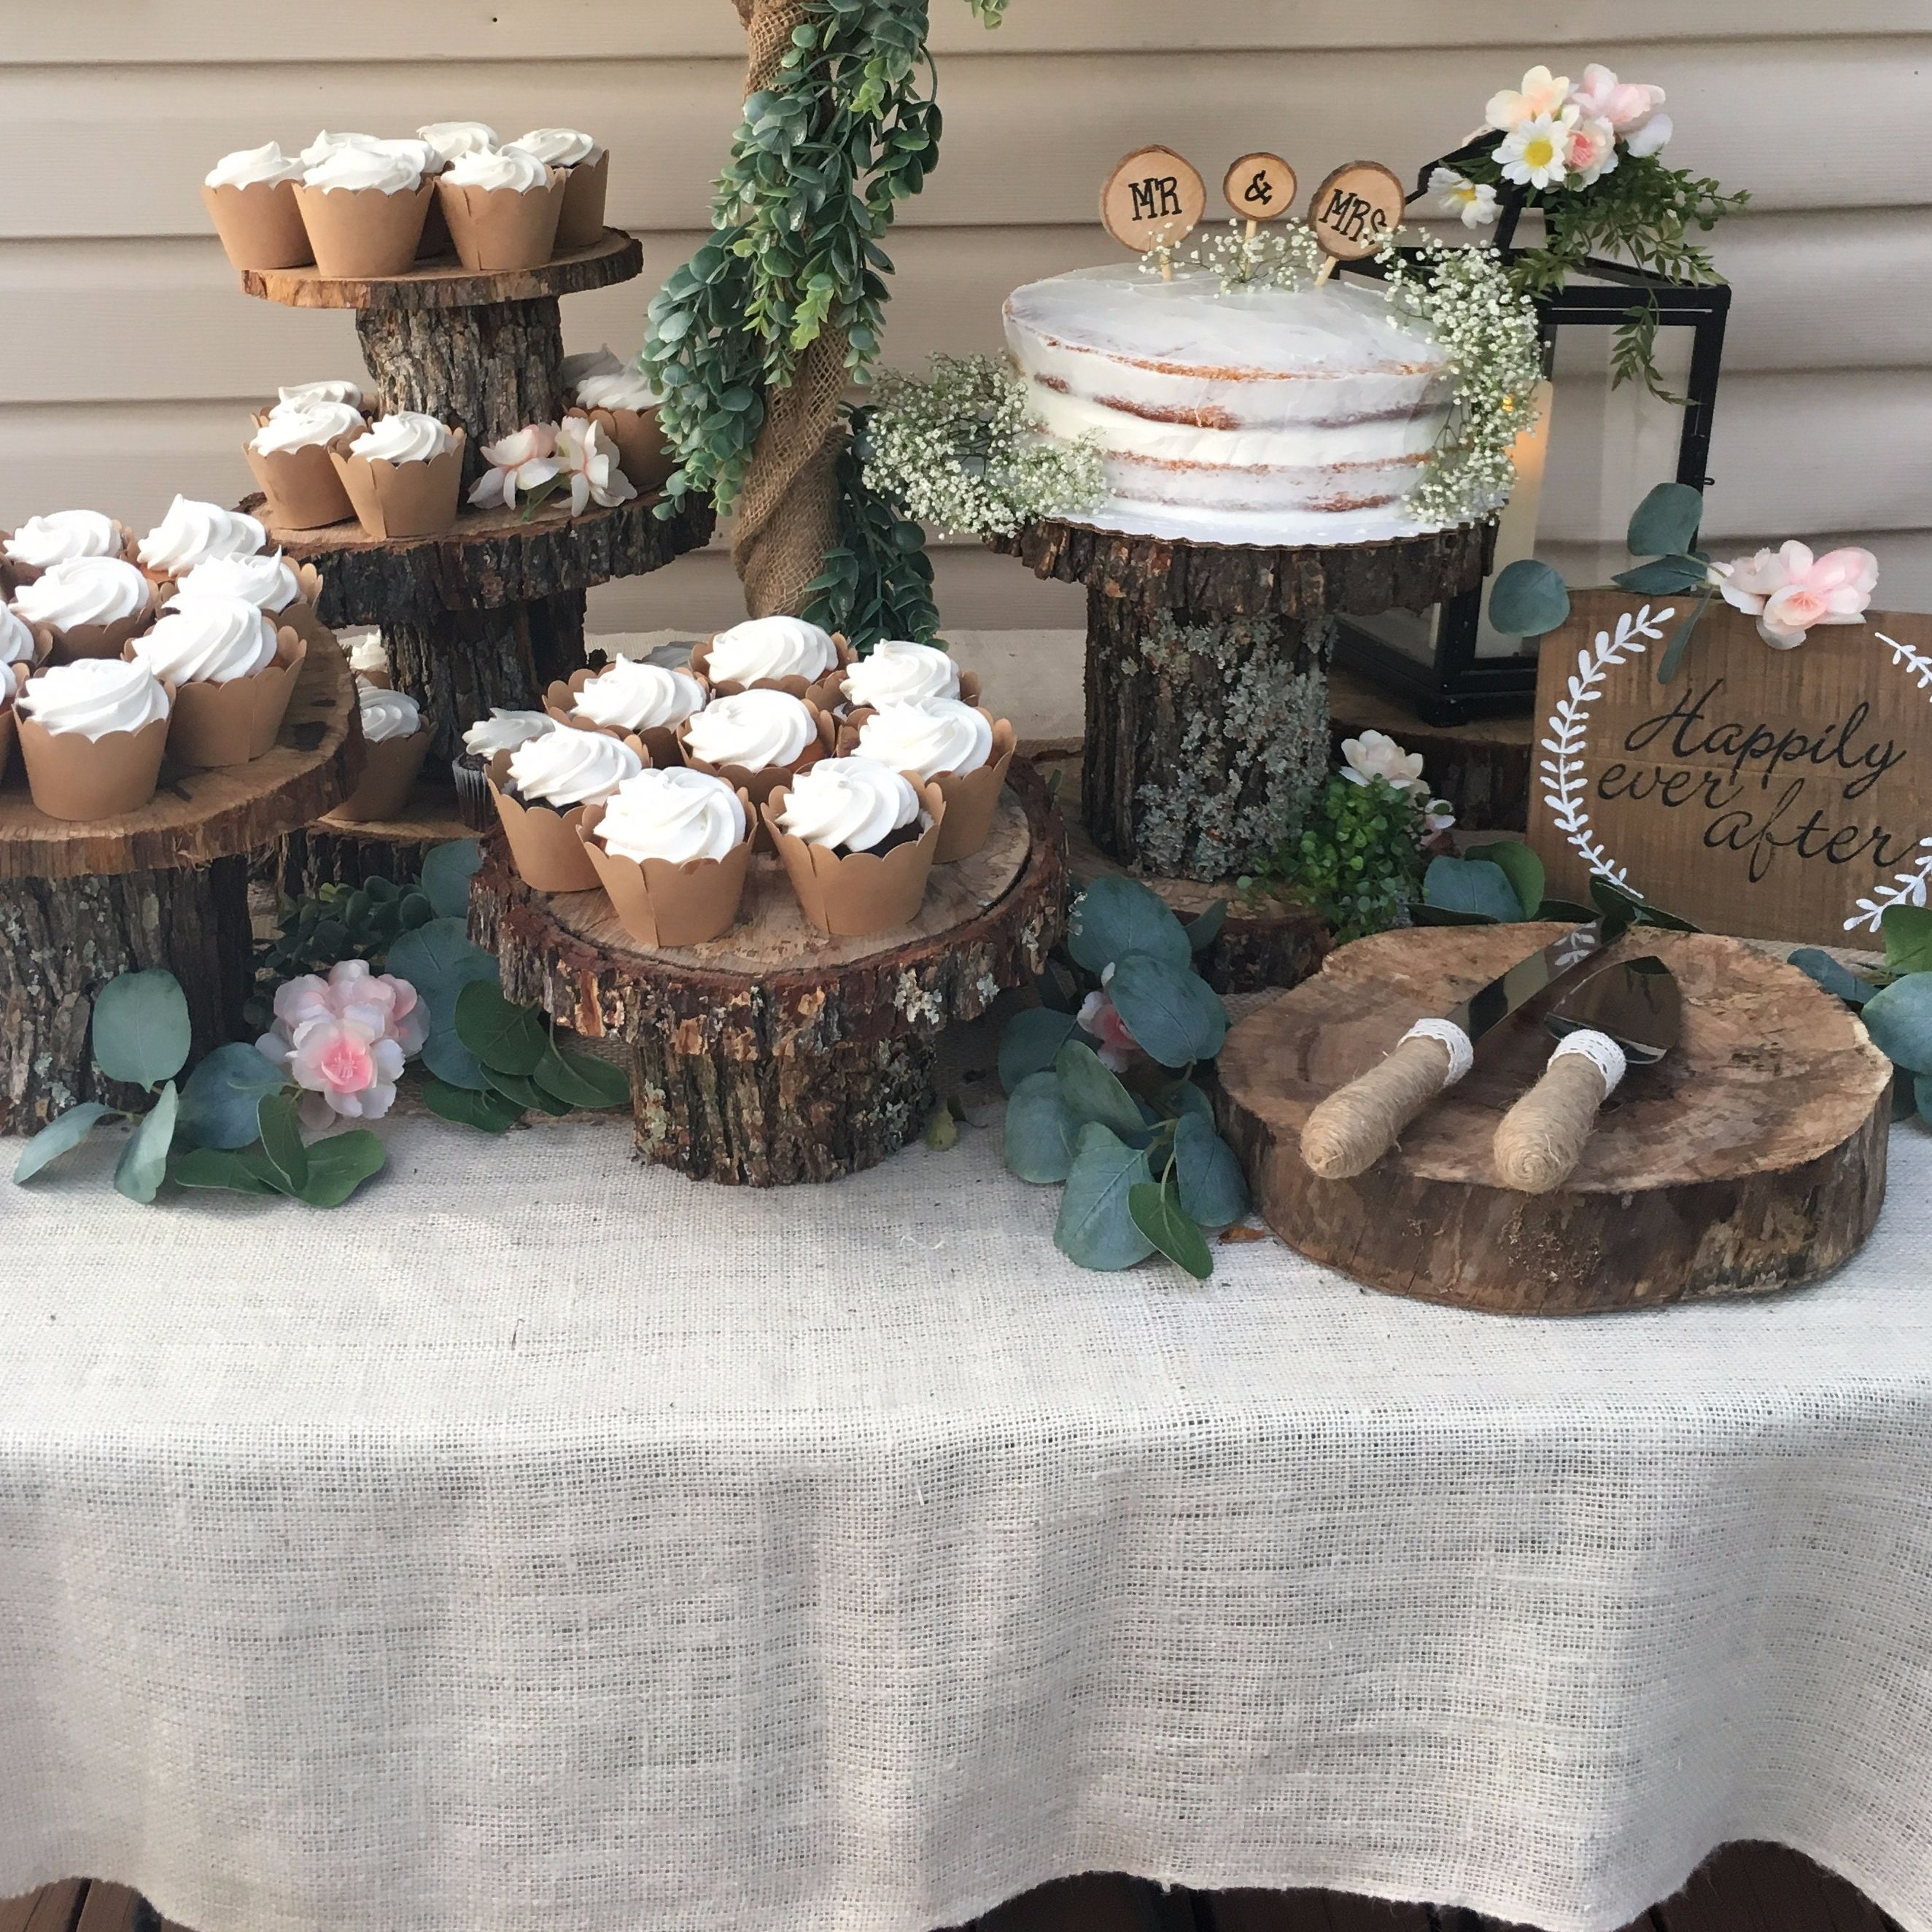 Rustic Back Yard Wedding Ideas: In This Post I Share Inexpensive And Easy Ways To Decorate